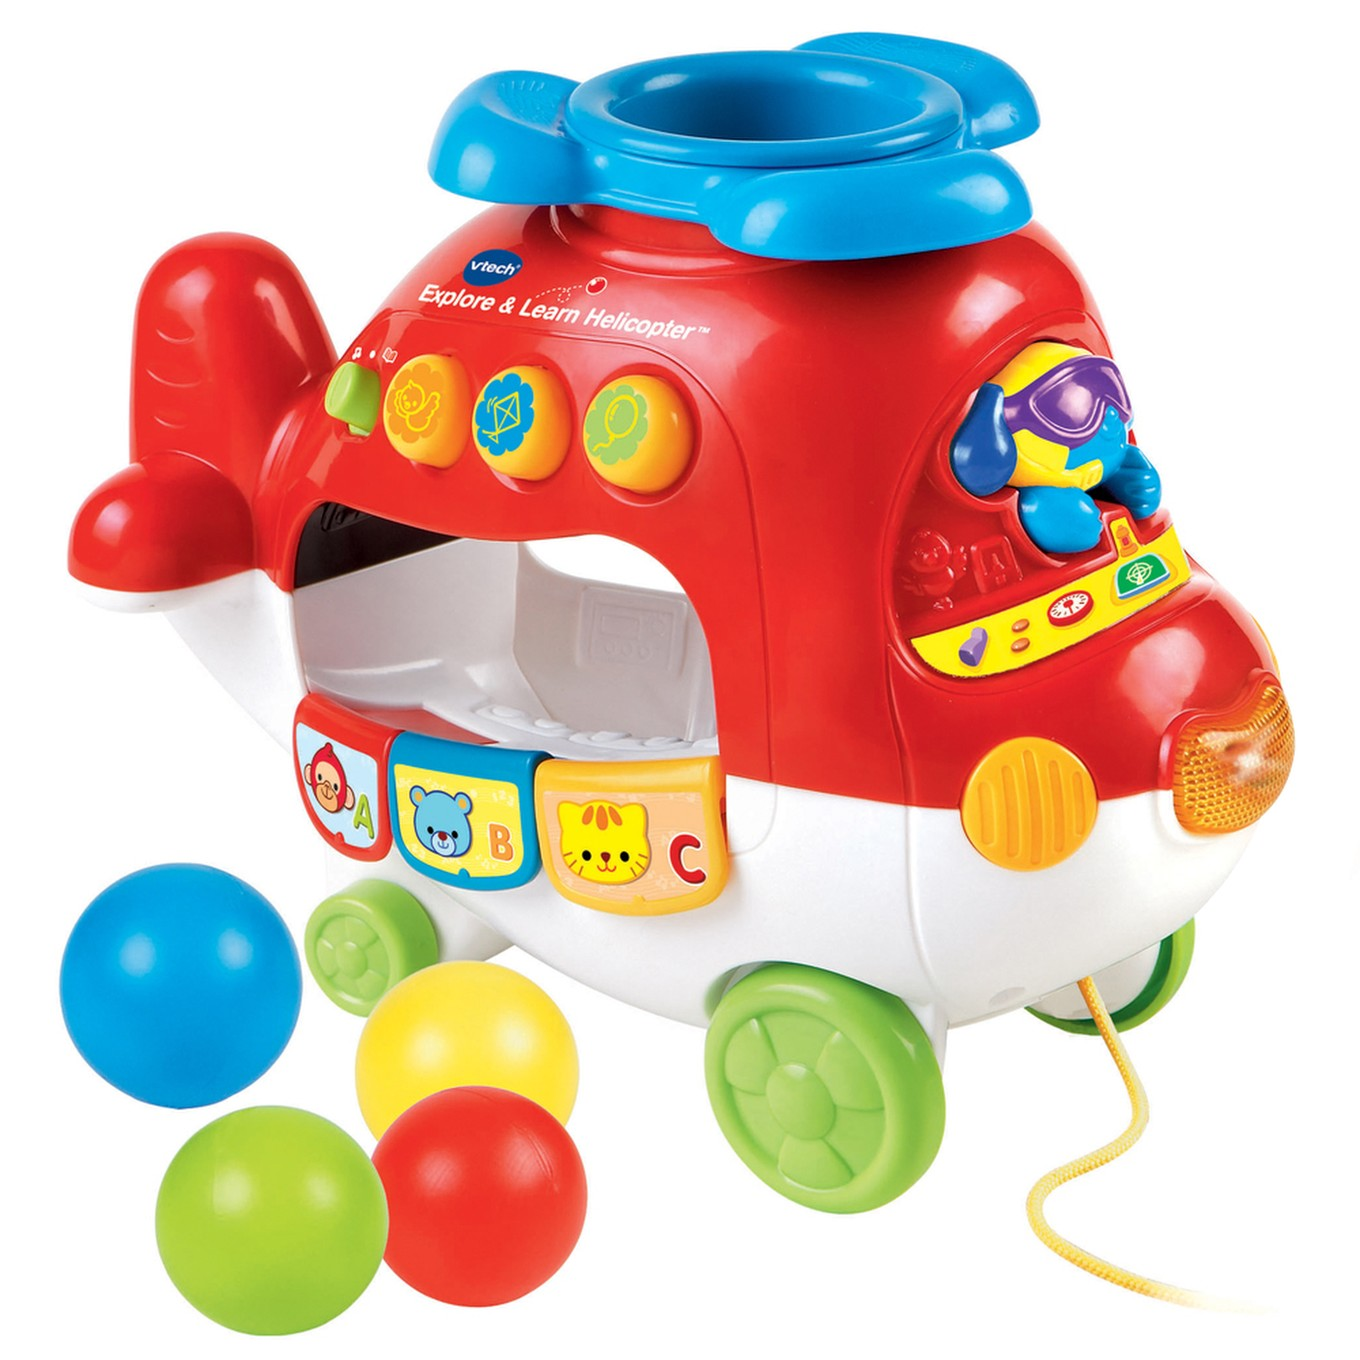 Vtech Explore & Learn Helicopter – Childhood Basic ...